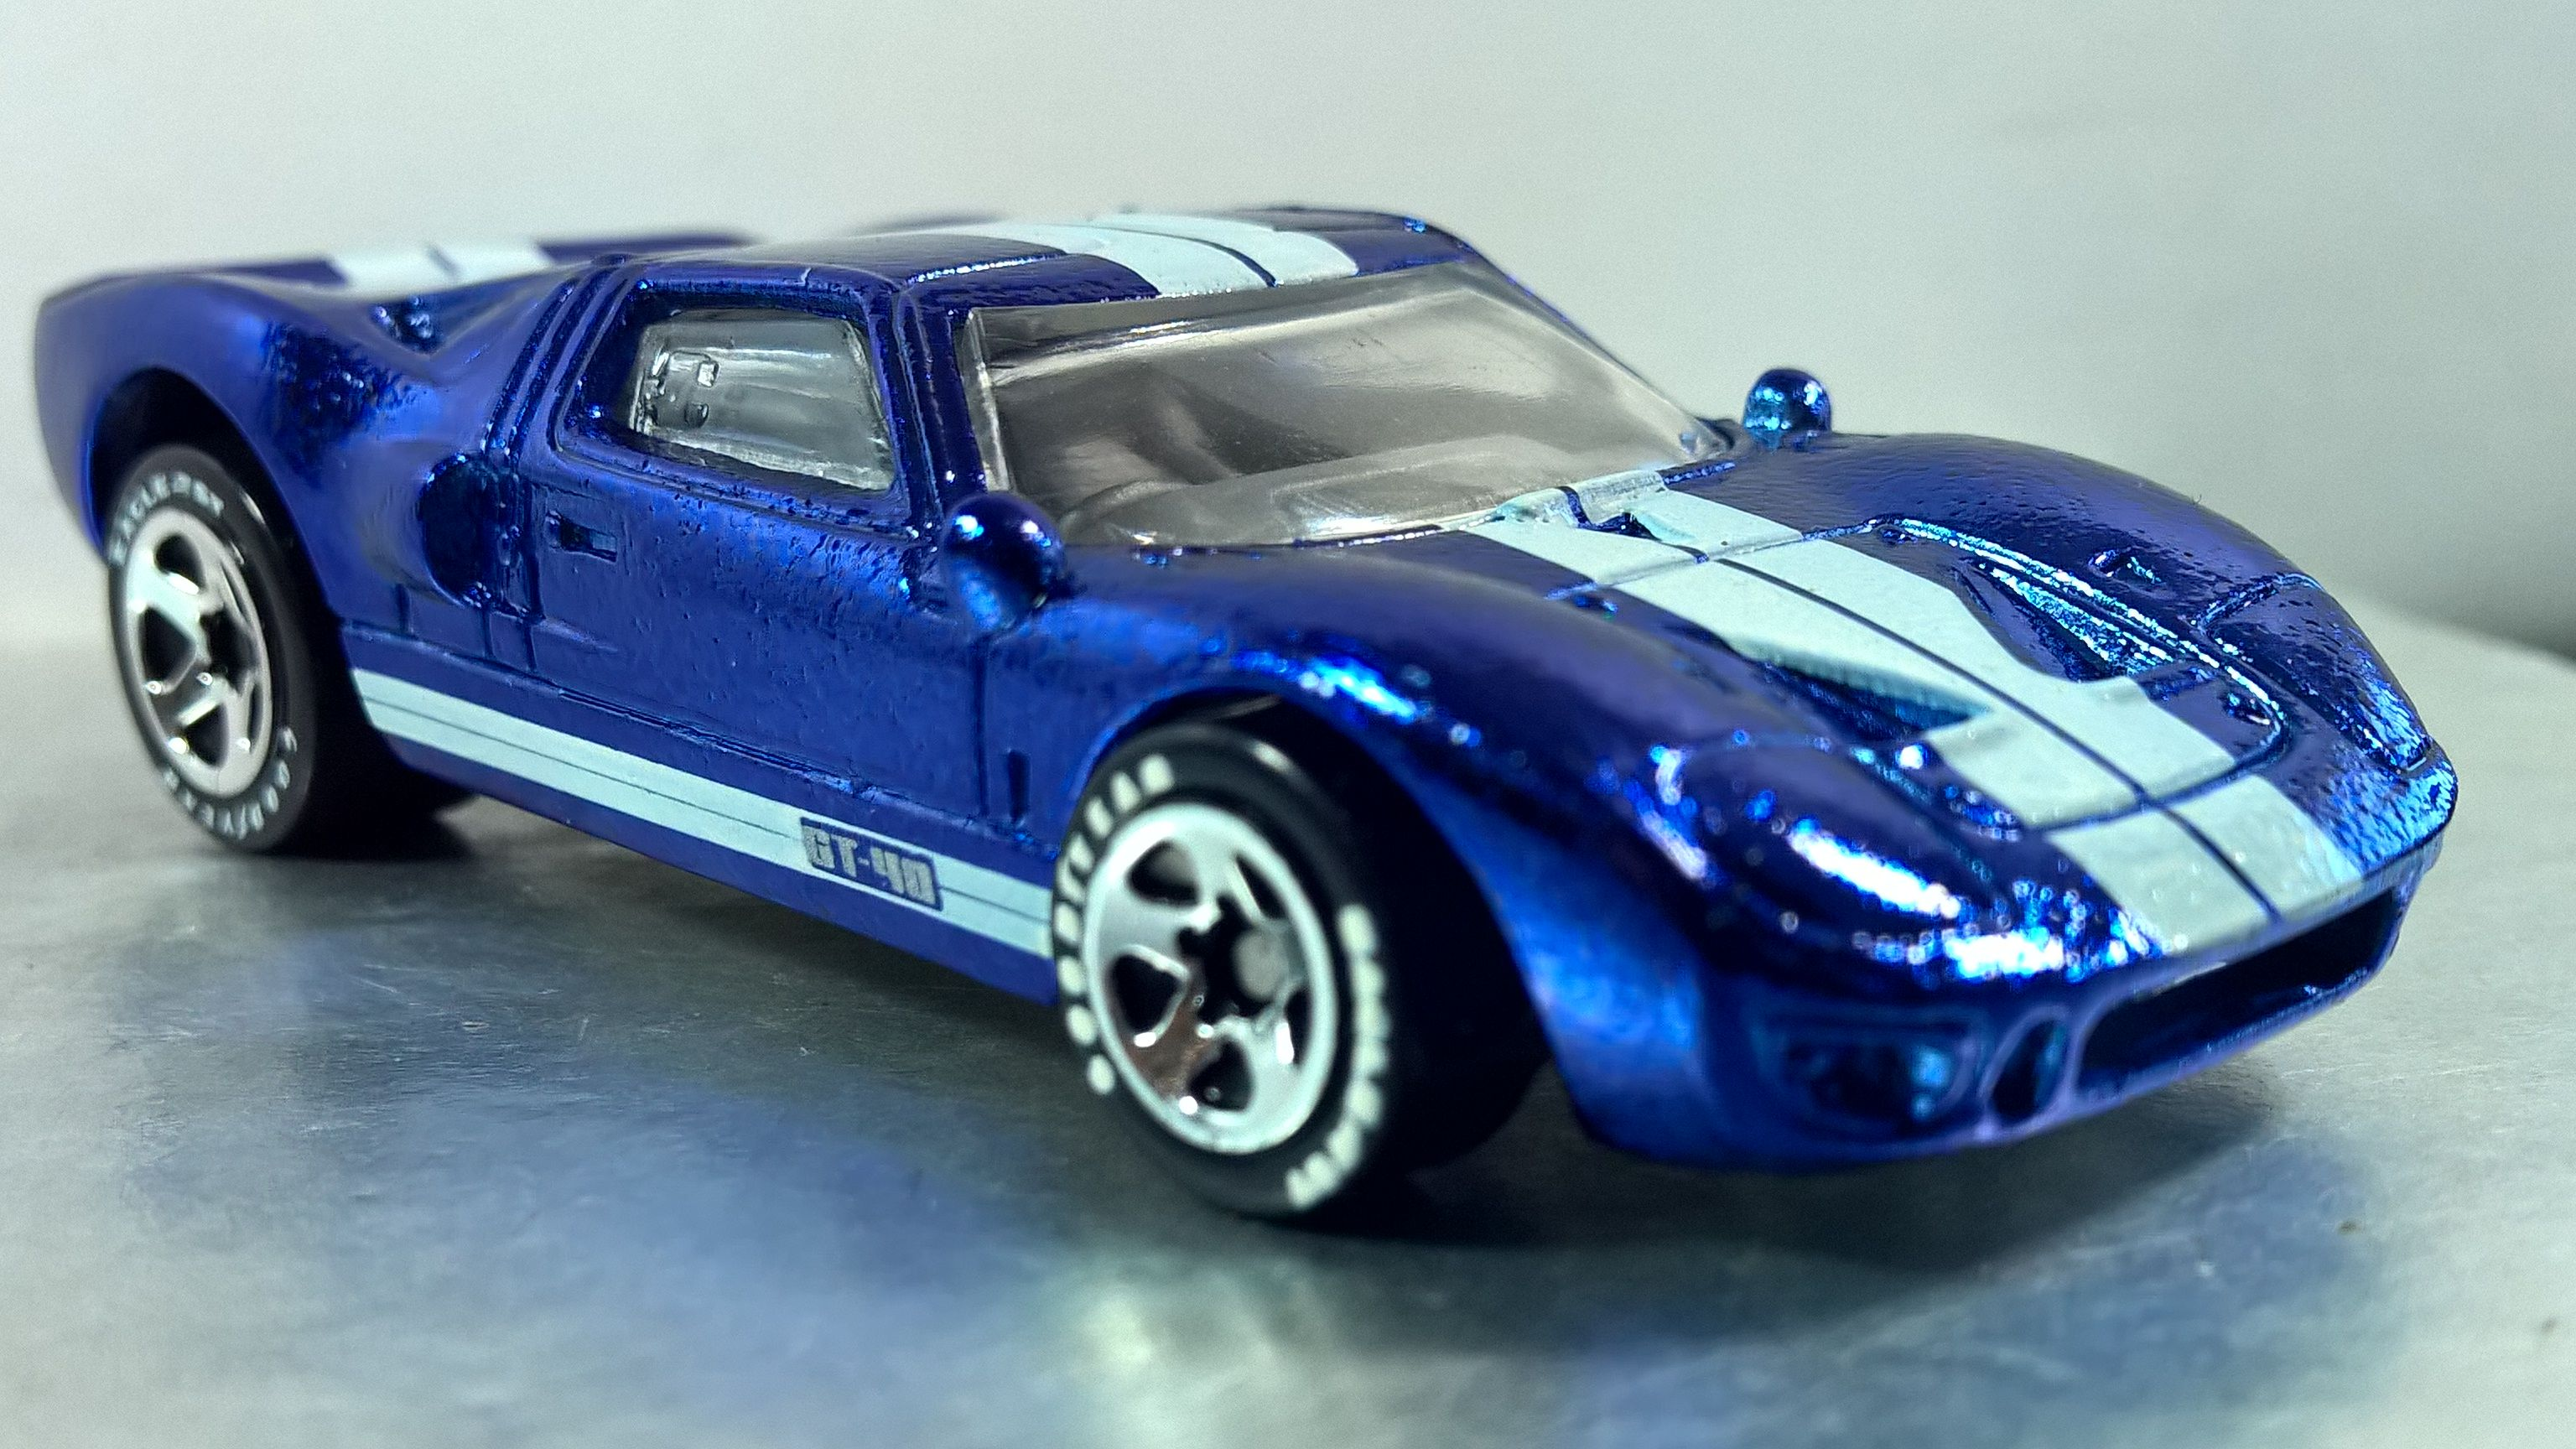 Ford Gt 40 Classics Series 2 9 30 2006 8 Ford Gt Hot Wheels